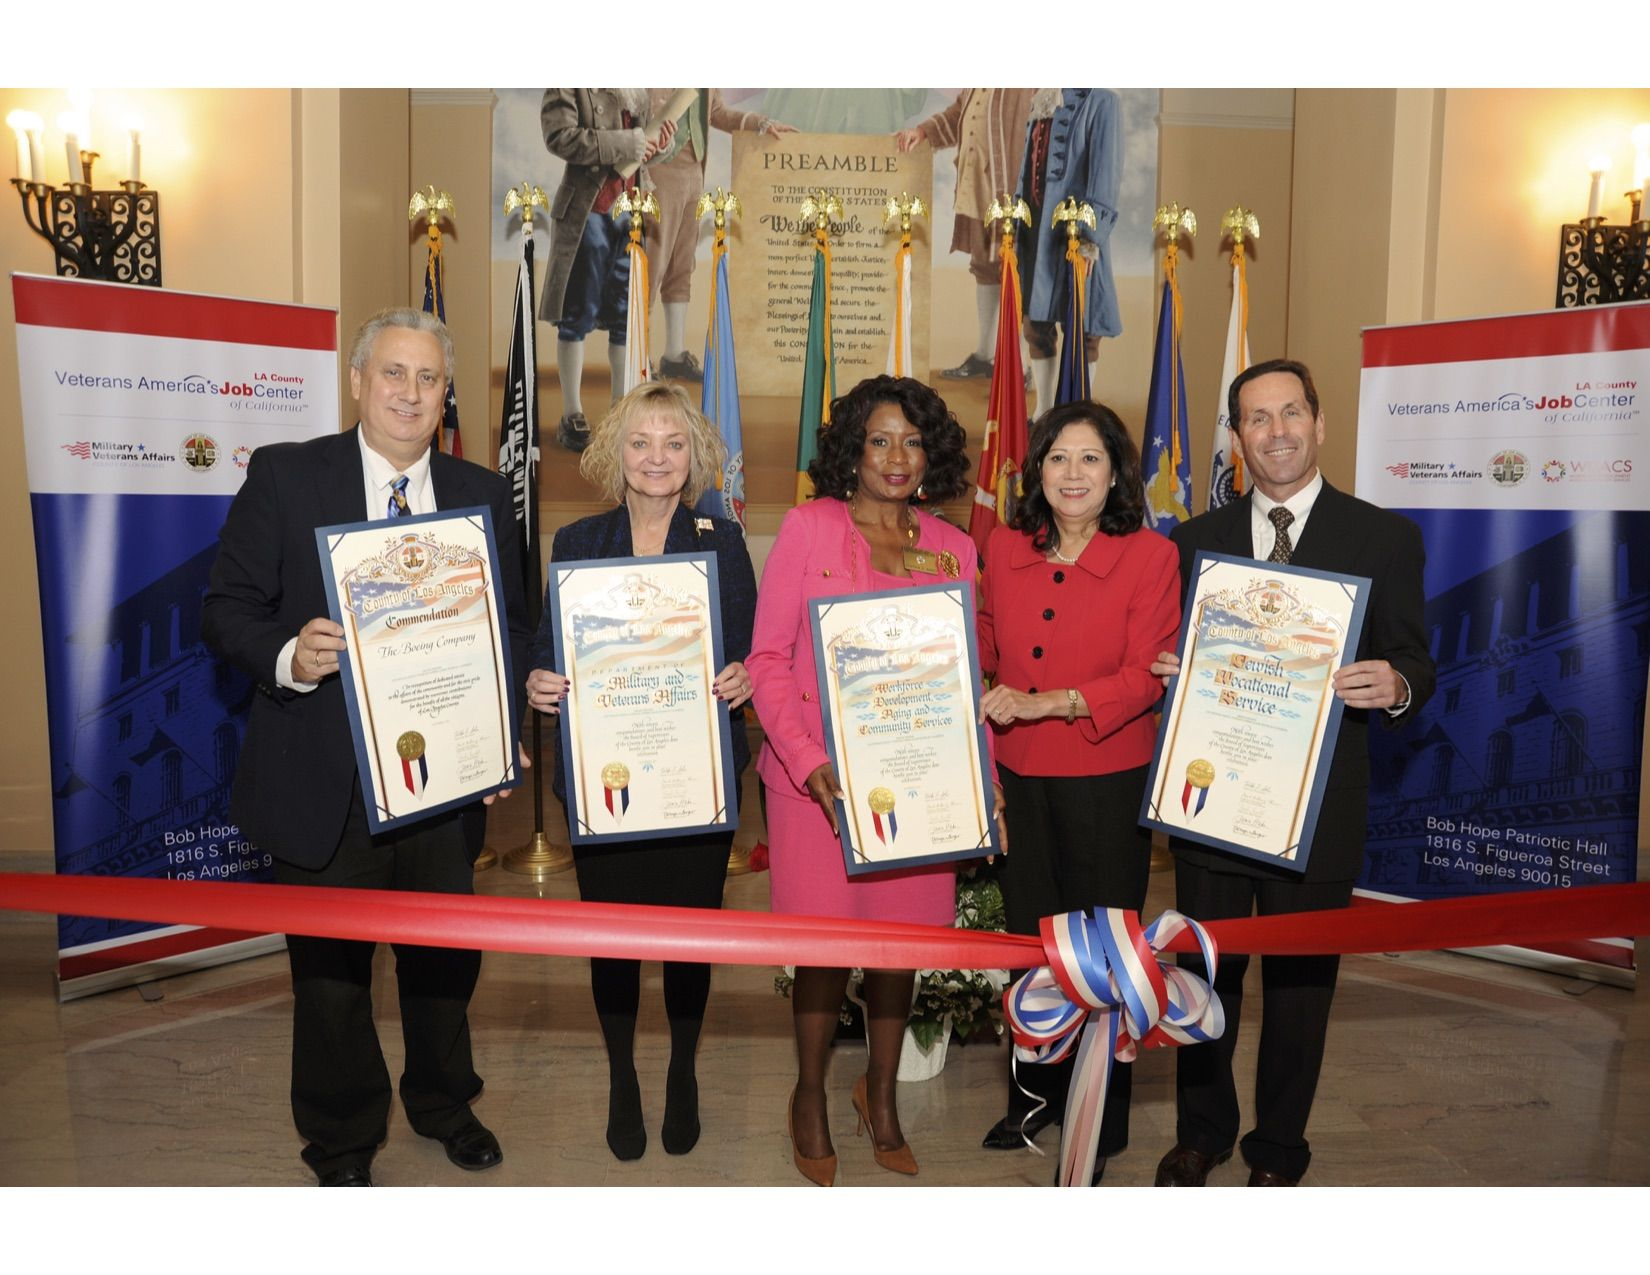 Grand Opening of LA County Veterans America's Job Center at Patriotic Hall